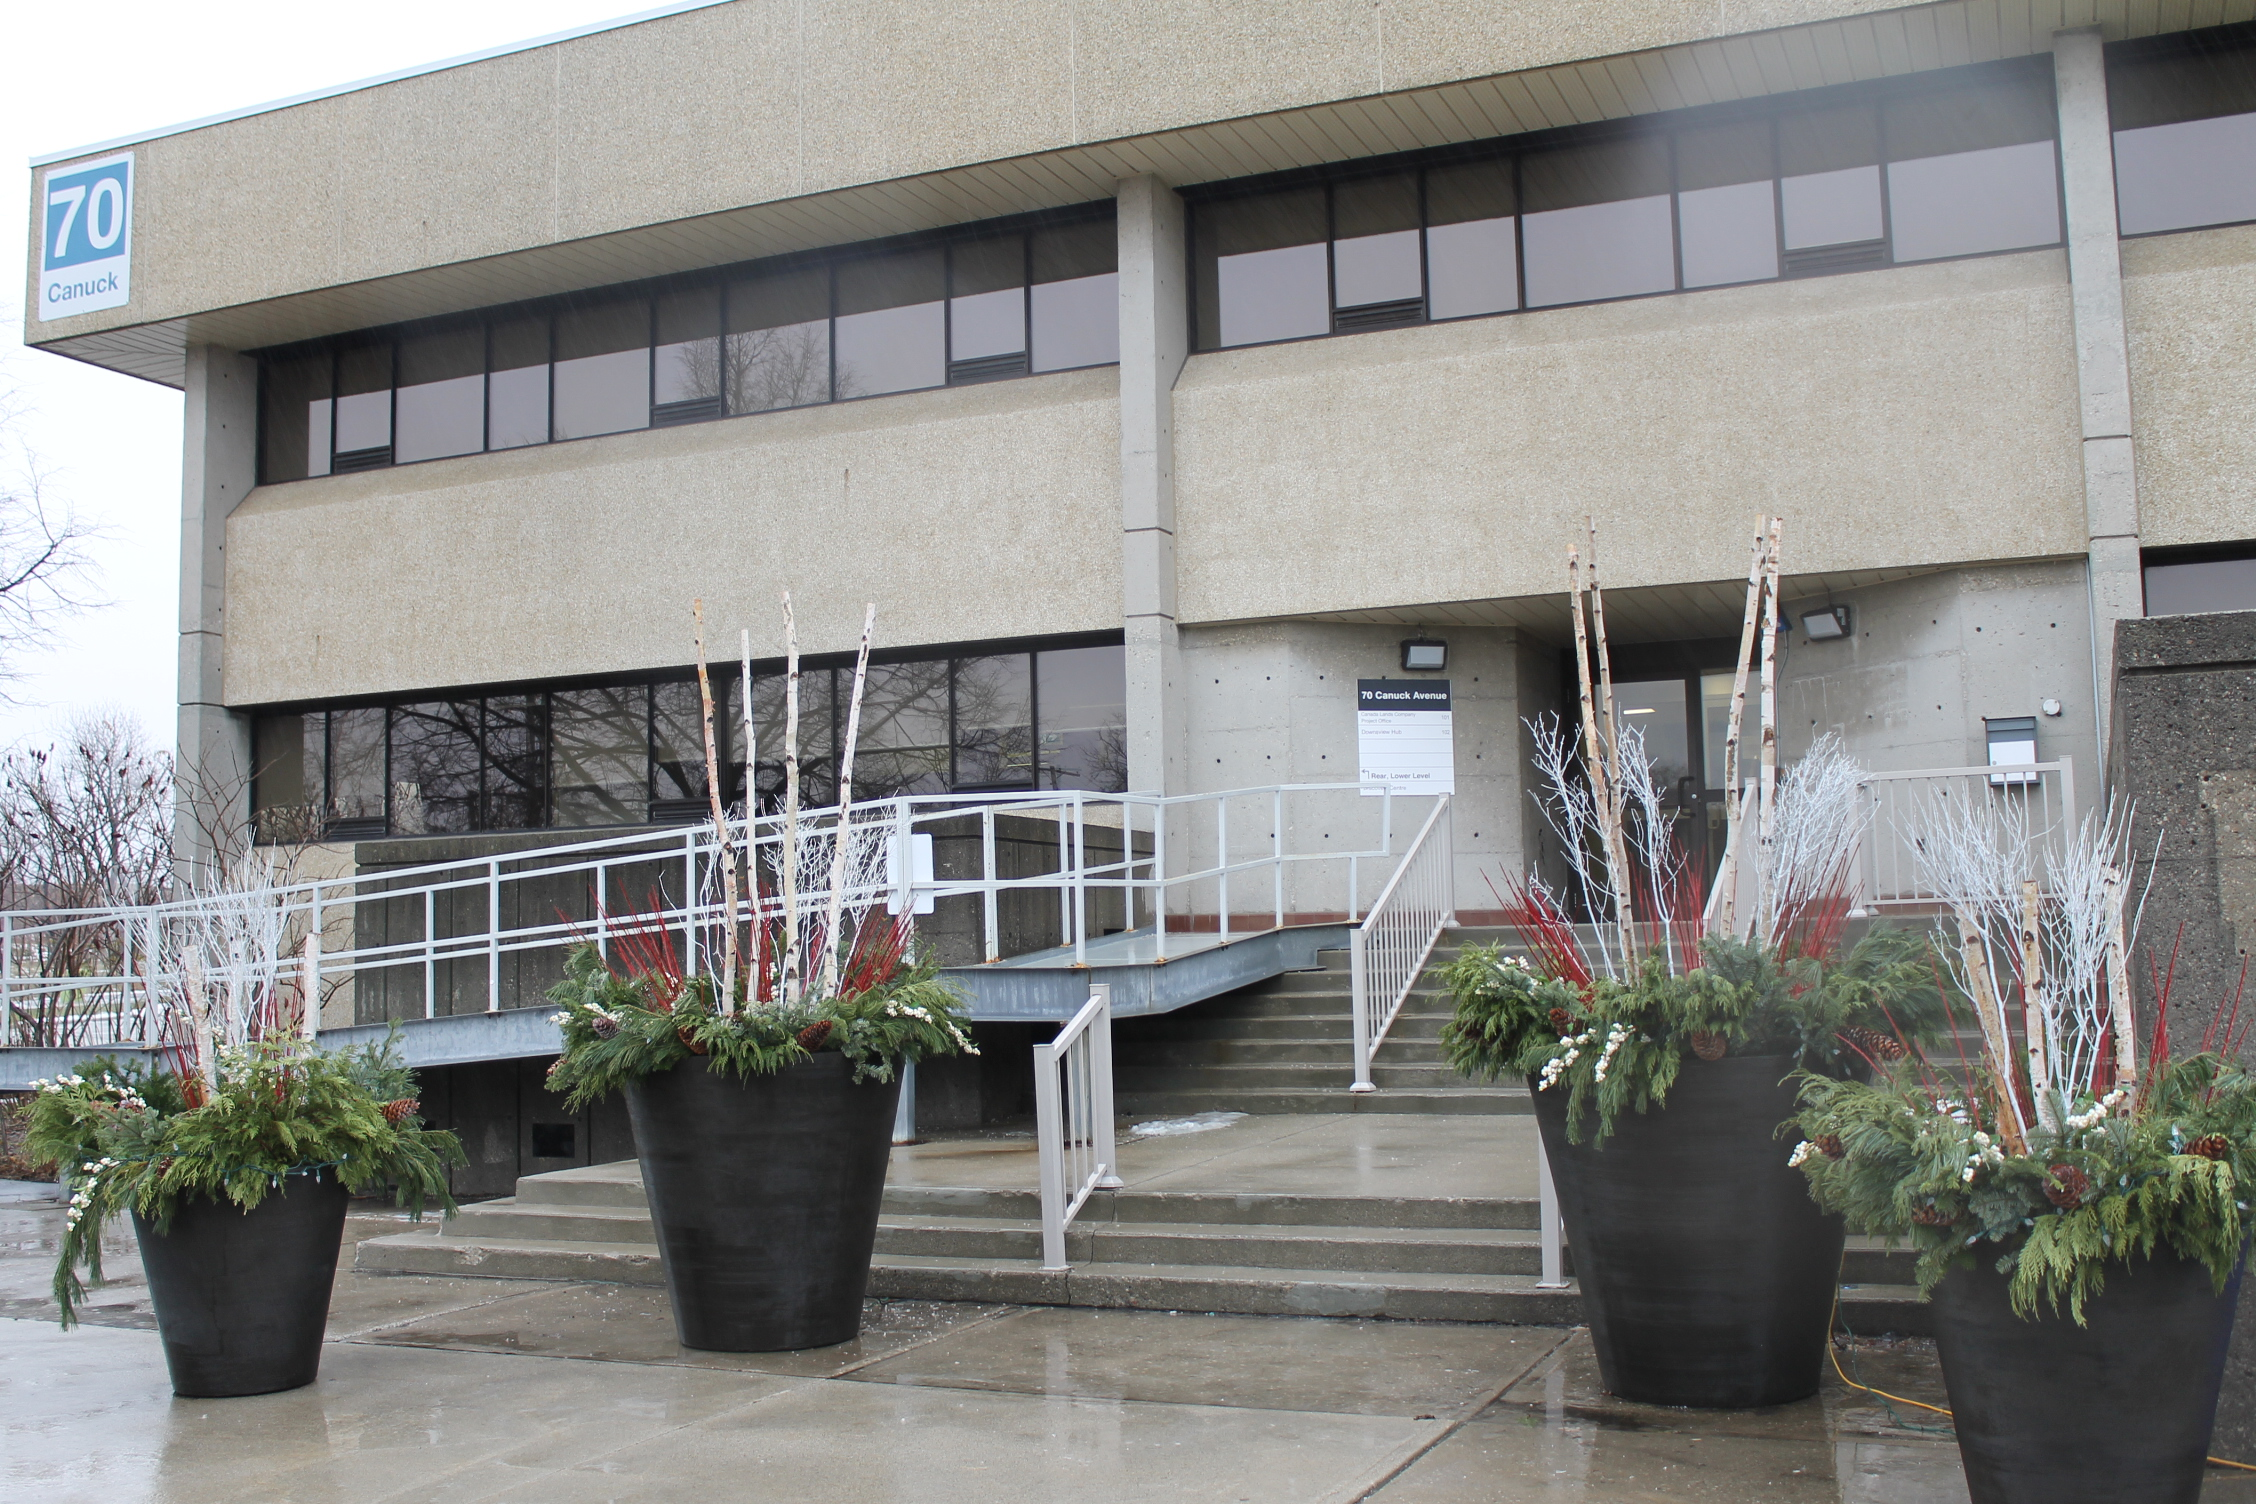 Picture of the front of the building. Long ramp displayed on the left